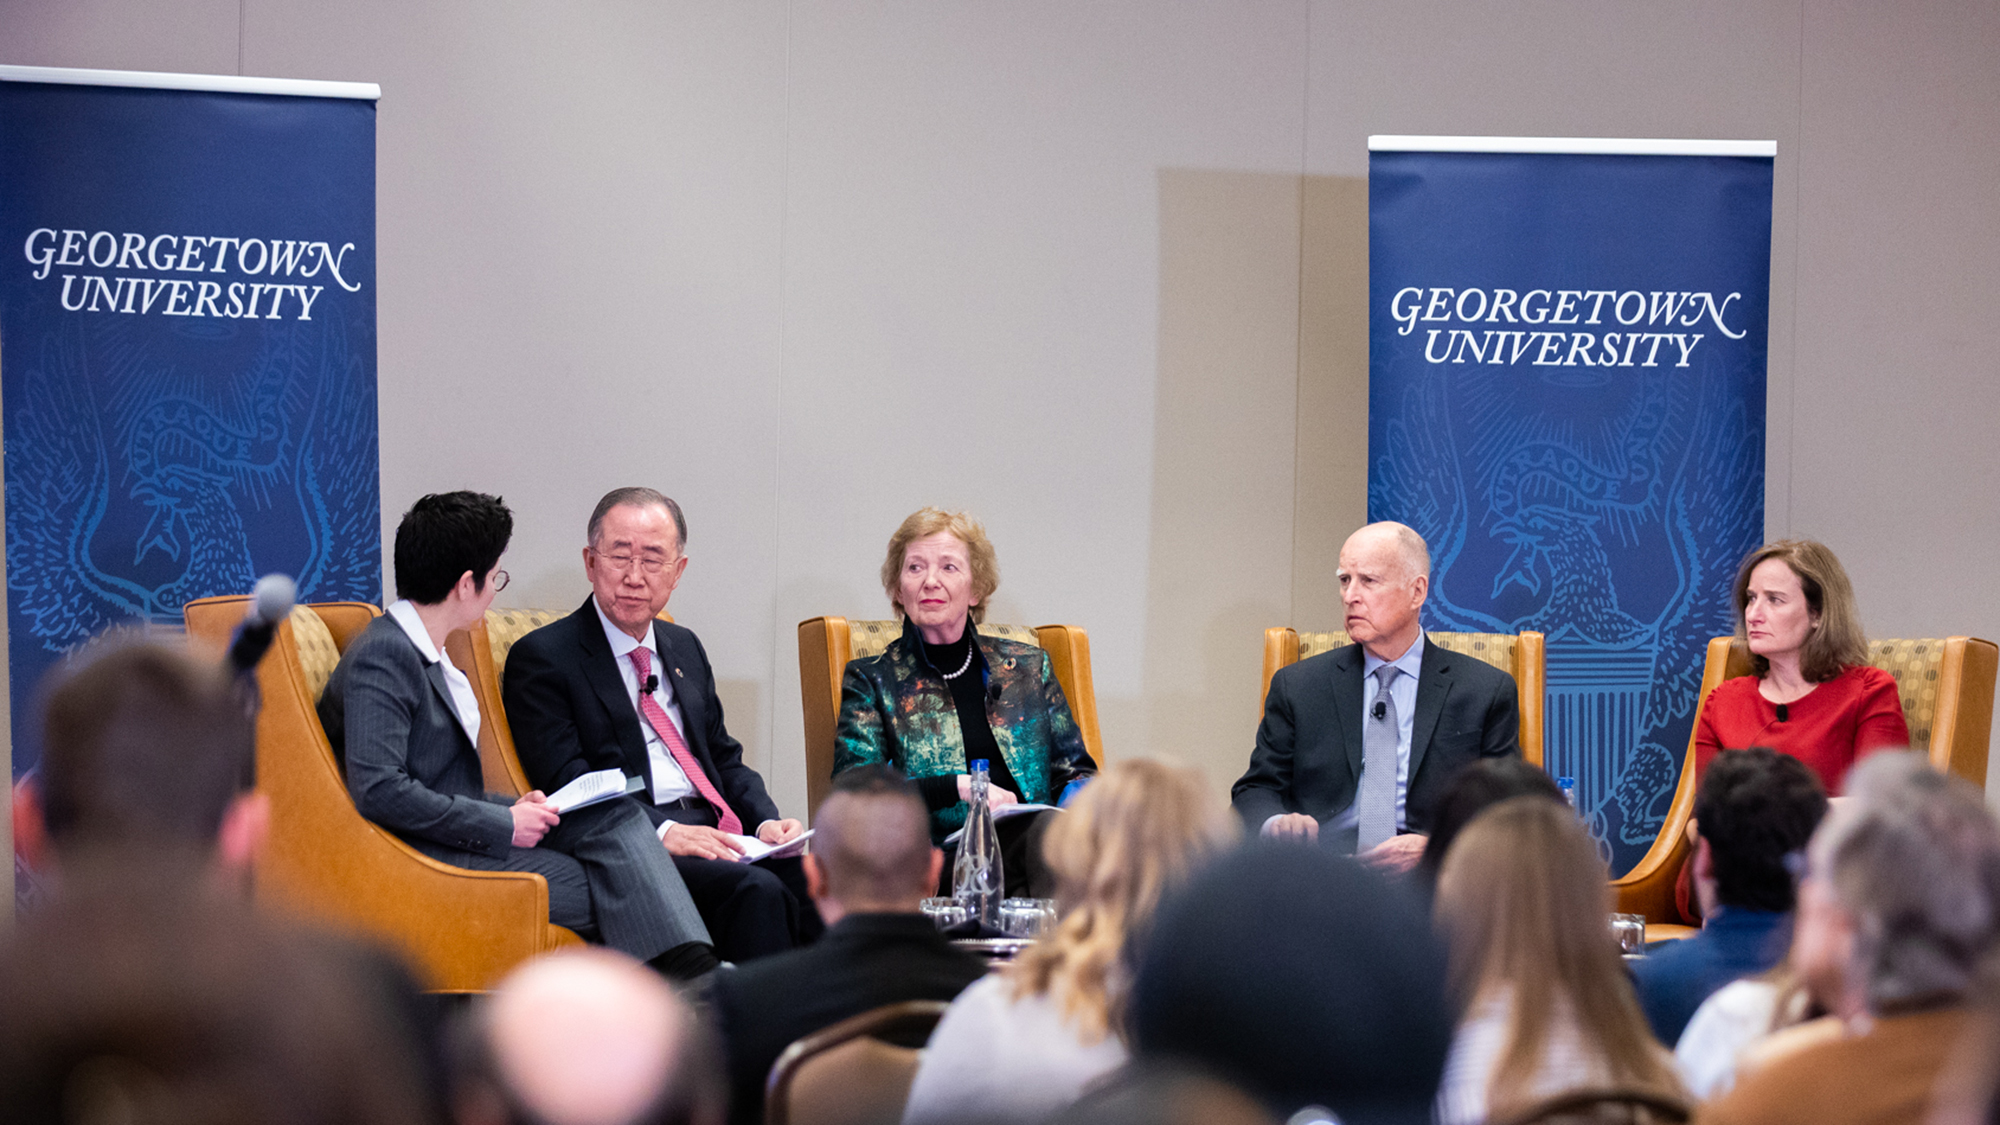 Desha Girod holds a microphone sitting next to Ban Ki-Moon, Mary Robinson, Jerry Brown and Rachel Bronson with a Georgetown University banner behind them